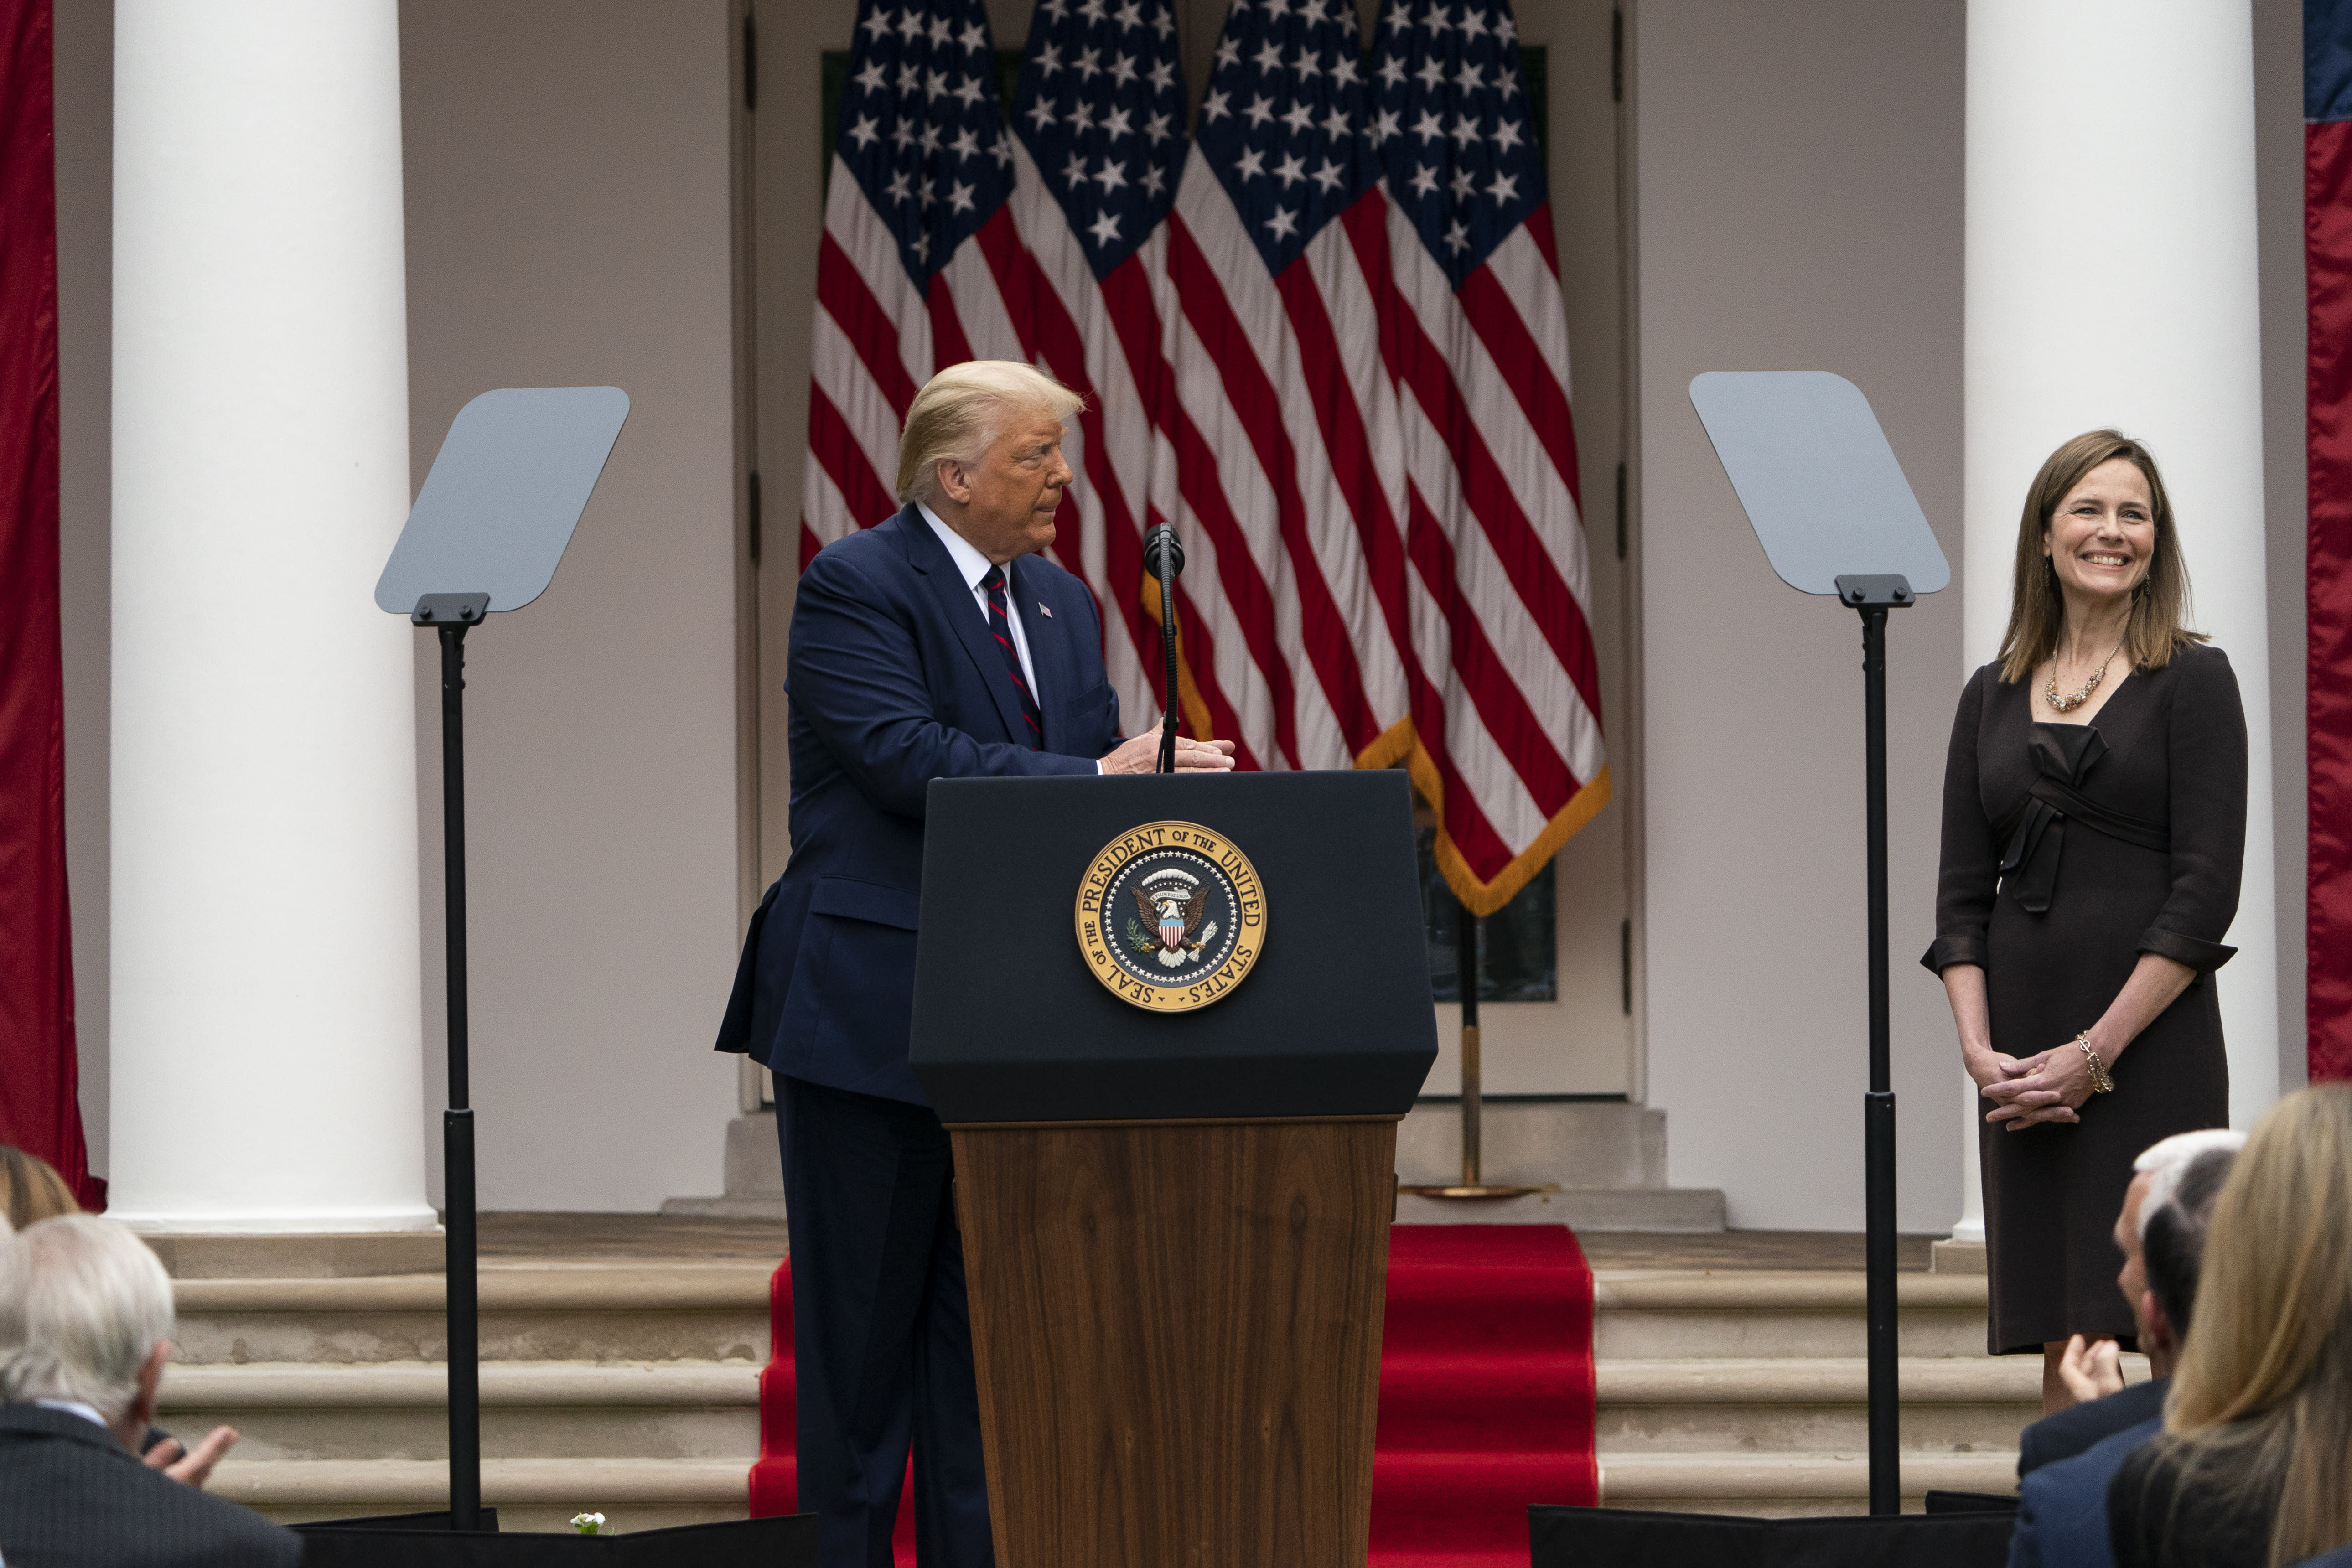 President Donald Trump speaks as he announces Judge Amy Coney Barrett as his nominee to the Supreme Court, in the Rose Garden at the White House, Saturday, Sept. 26, 2020, in Washington. (AP Photo/Alex Brandon)